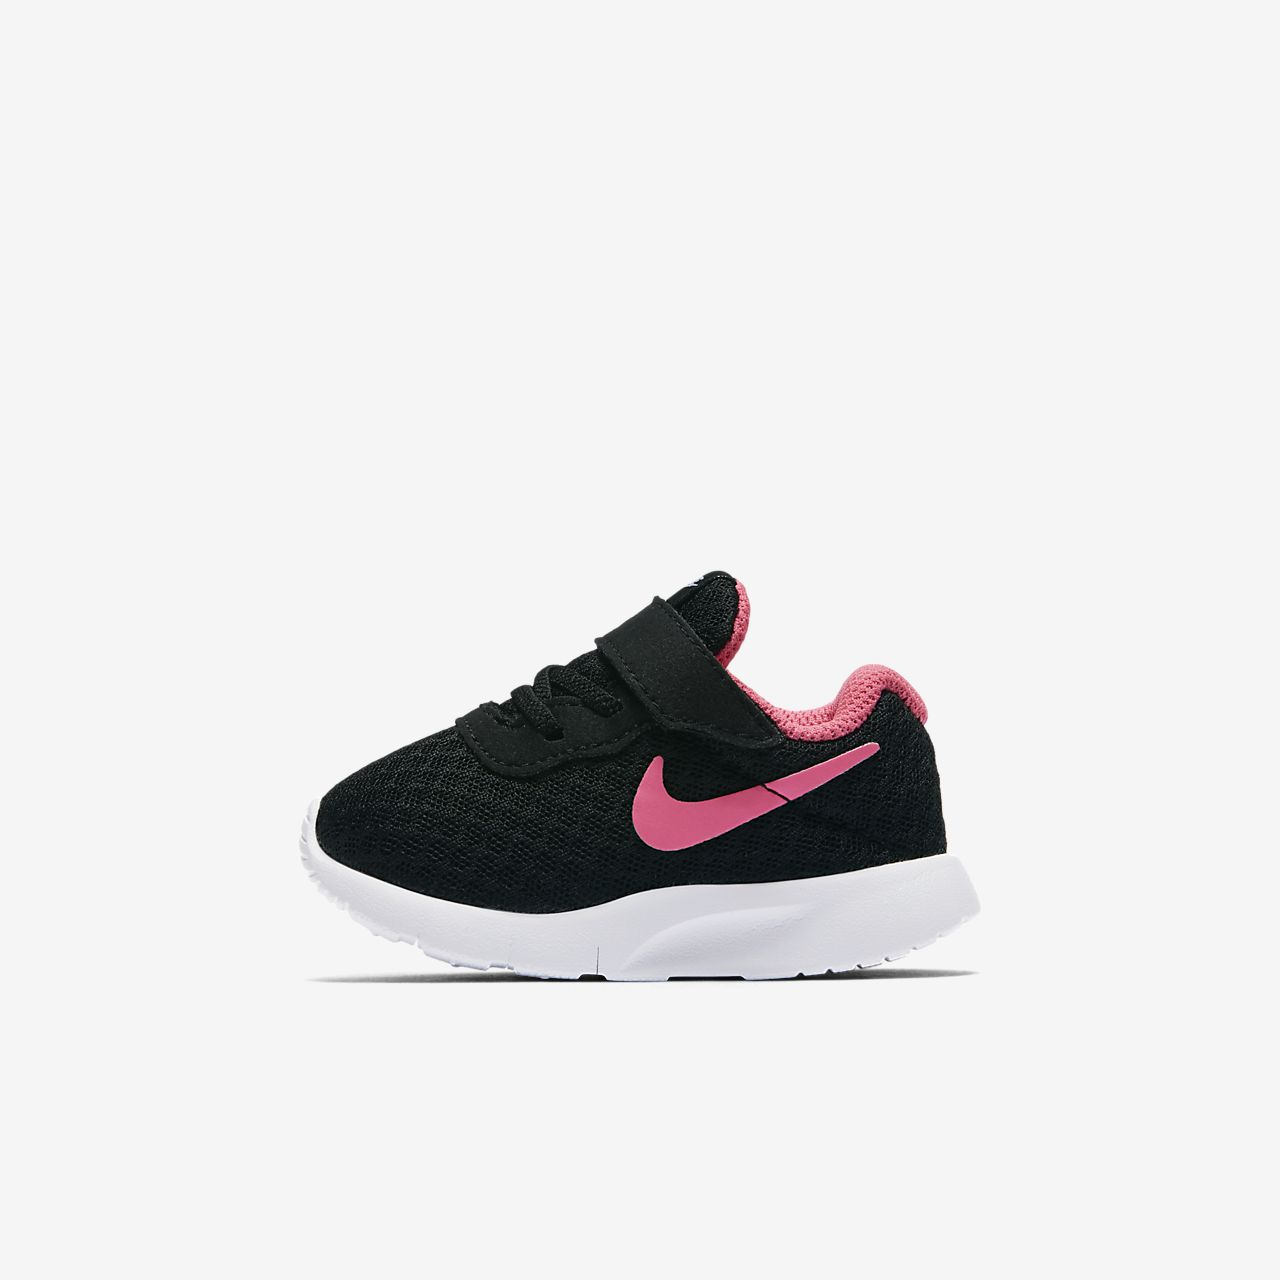 on sale c2807 914dd Baby  amp  Toddler Shoe. Nike Tanjun